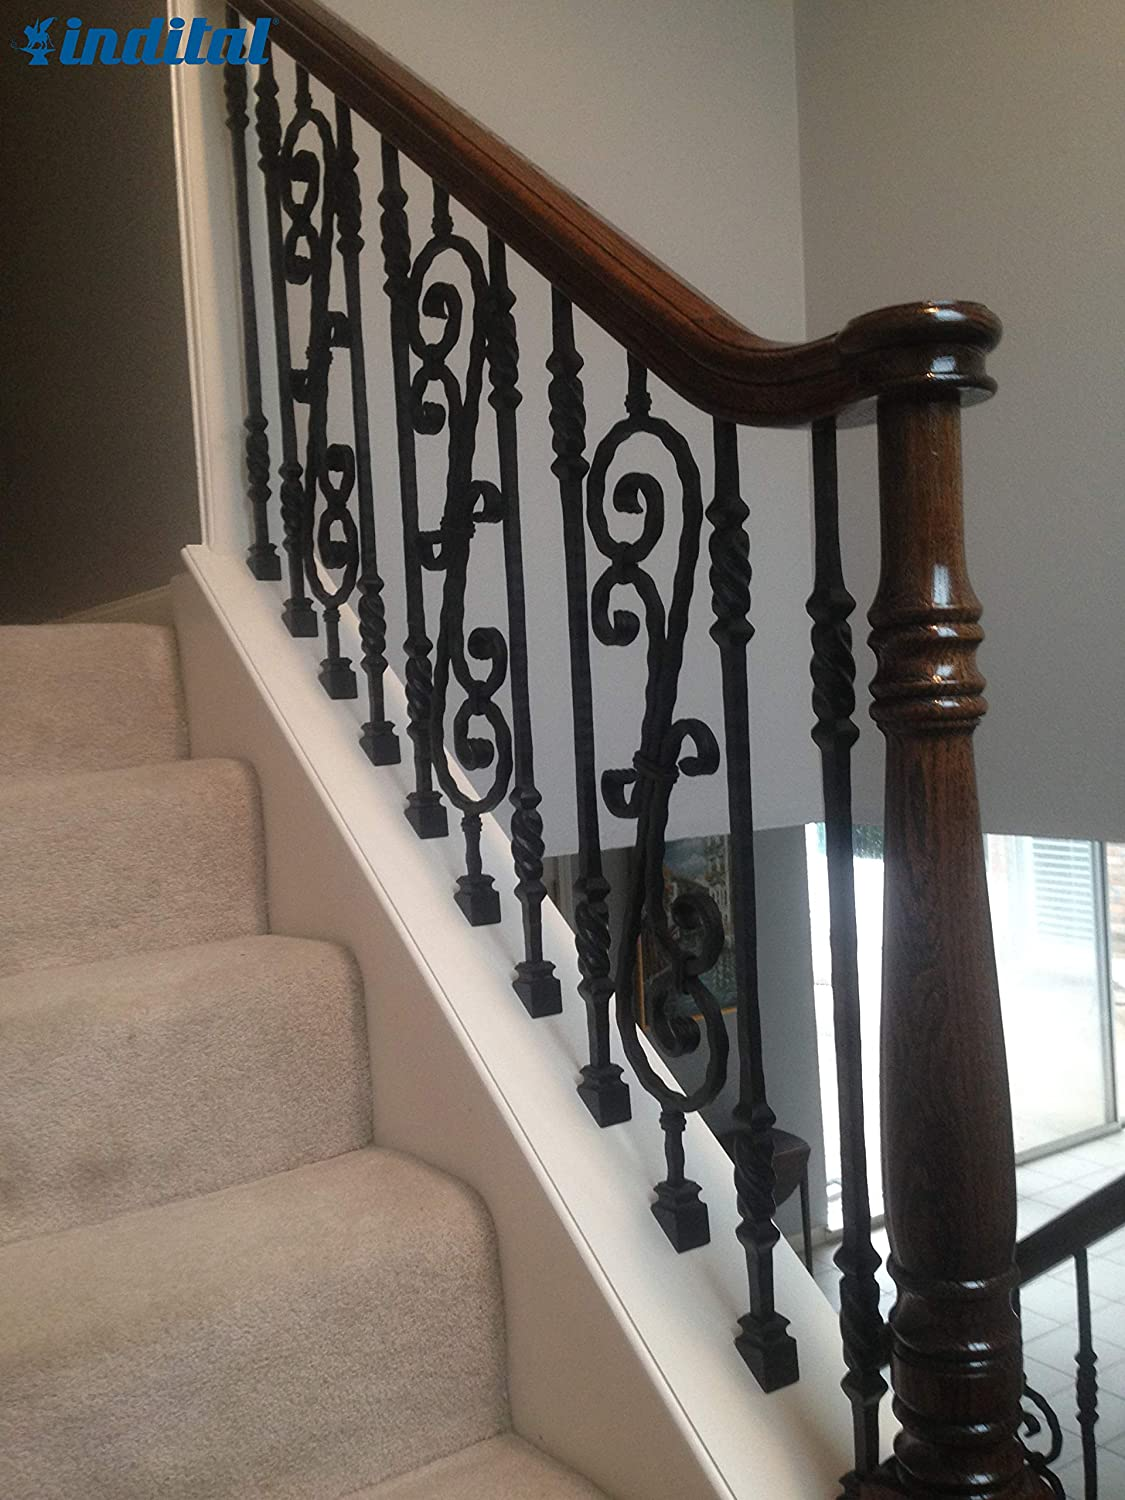 Wrought Iron Black Indital PC22-5-0007 Powder Coated Wrought Iron Baluster for Stairs and Railings 44 3//32 H x 5 3//4 W x Scroll 1//2 x 1//4 22 7//16 Plain Double S-Scroll Design